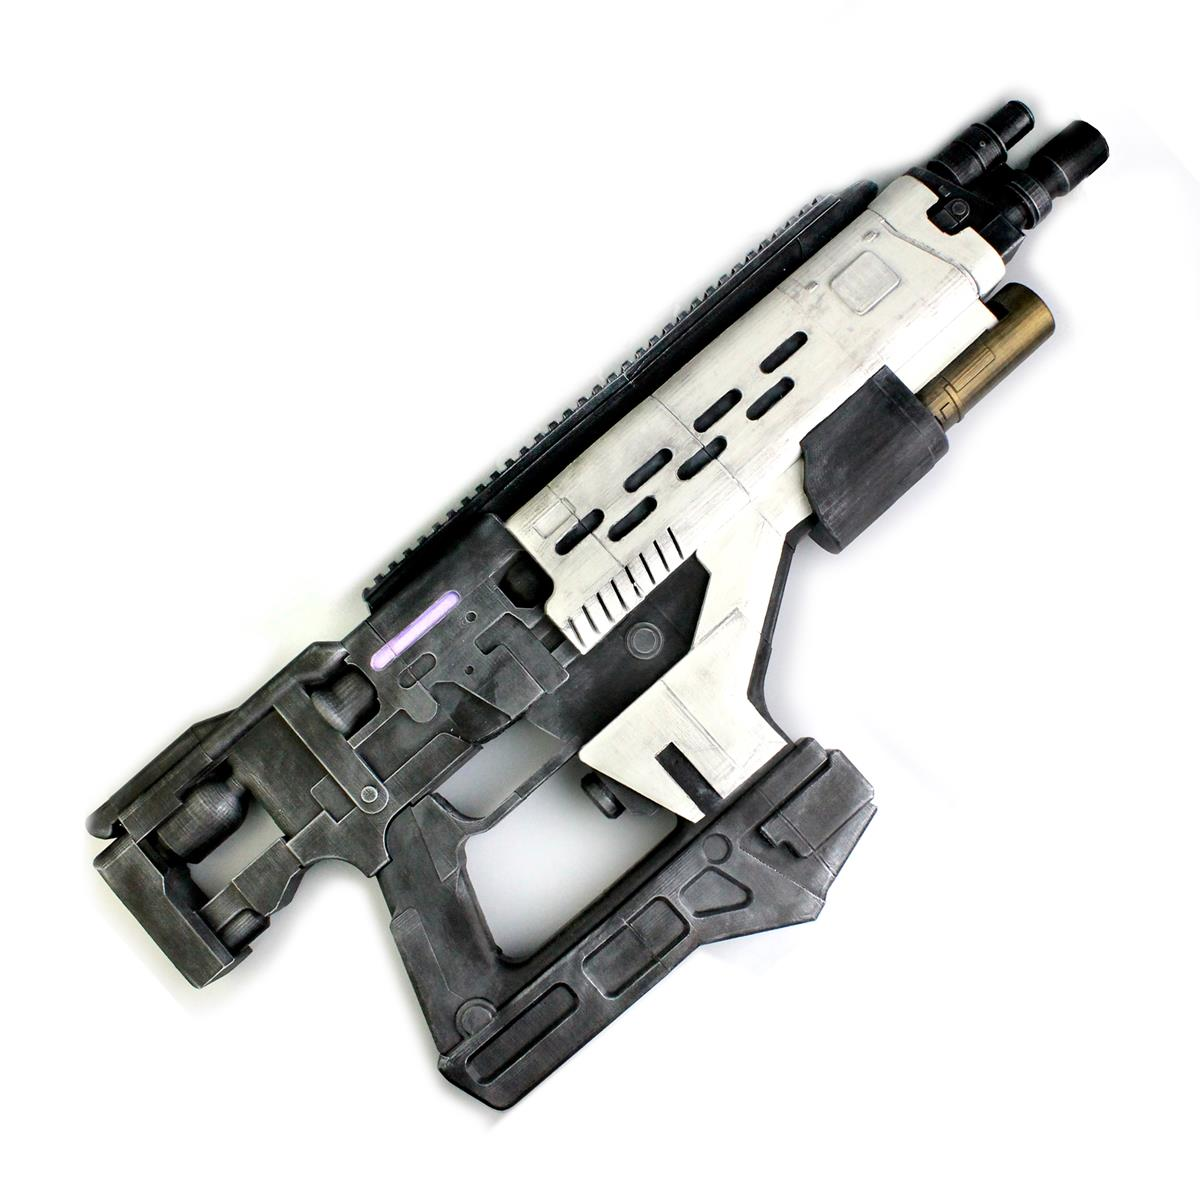 Yes, You Can 3D-print A Destiny Fusion Rifle